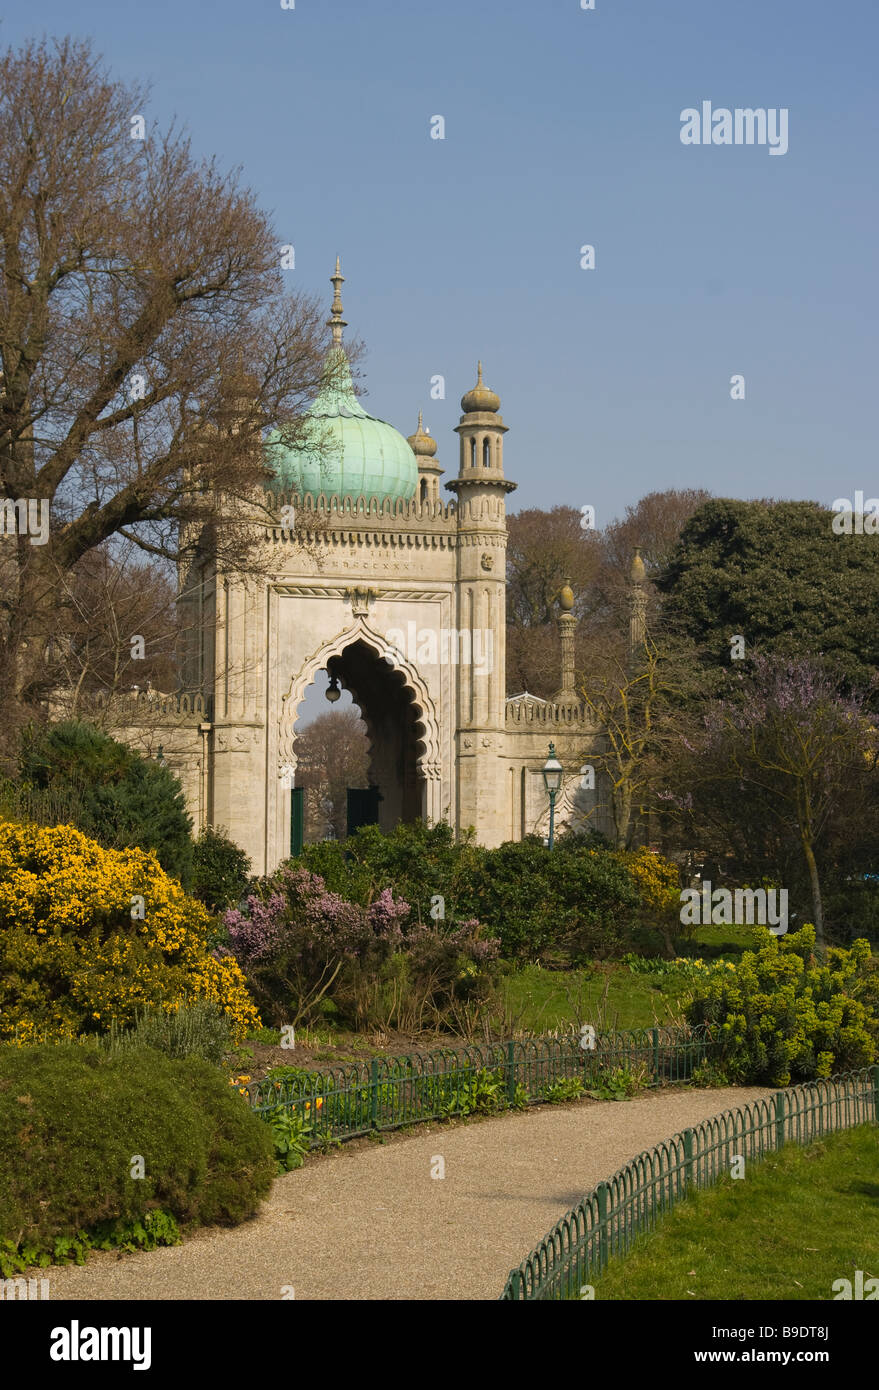 Entrance To The Royal Pavilion Gardens Brighton East Sussex England - Stock Image